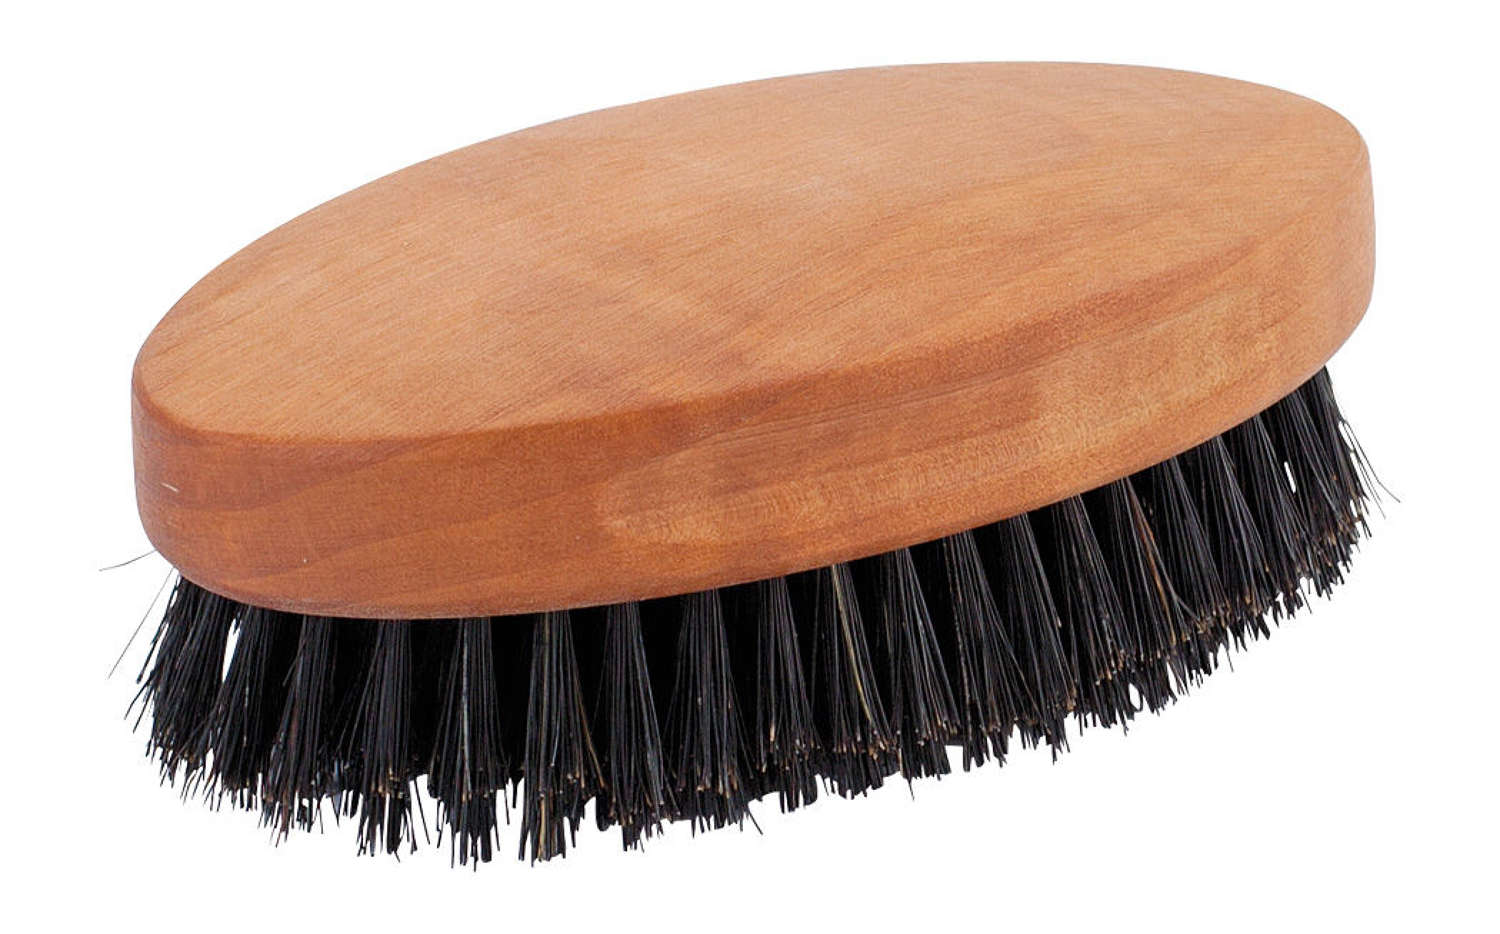 Men's hairbrush with no handle - real bristle and pearwood